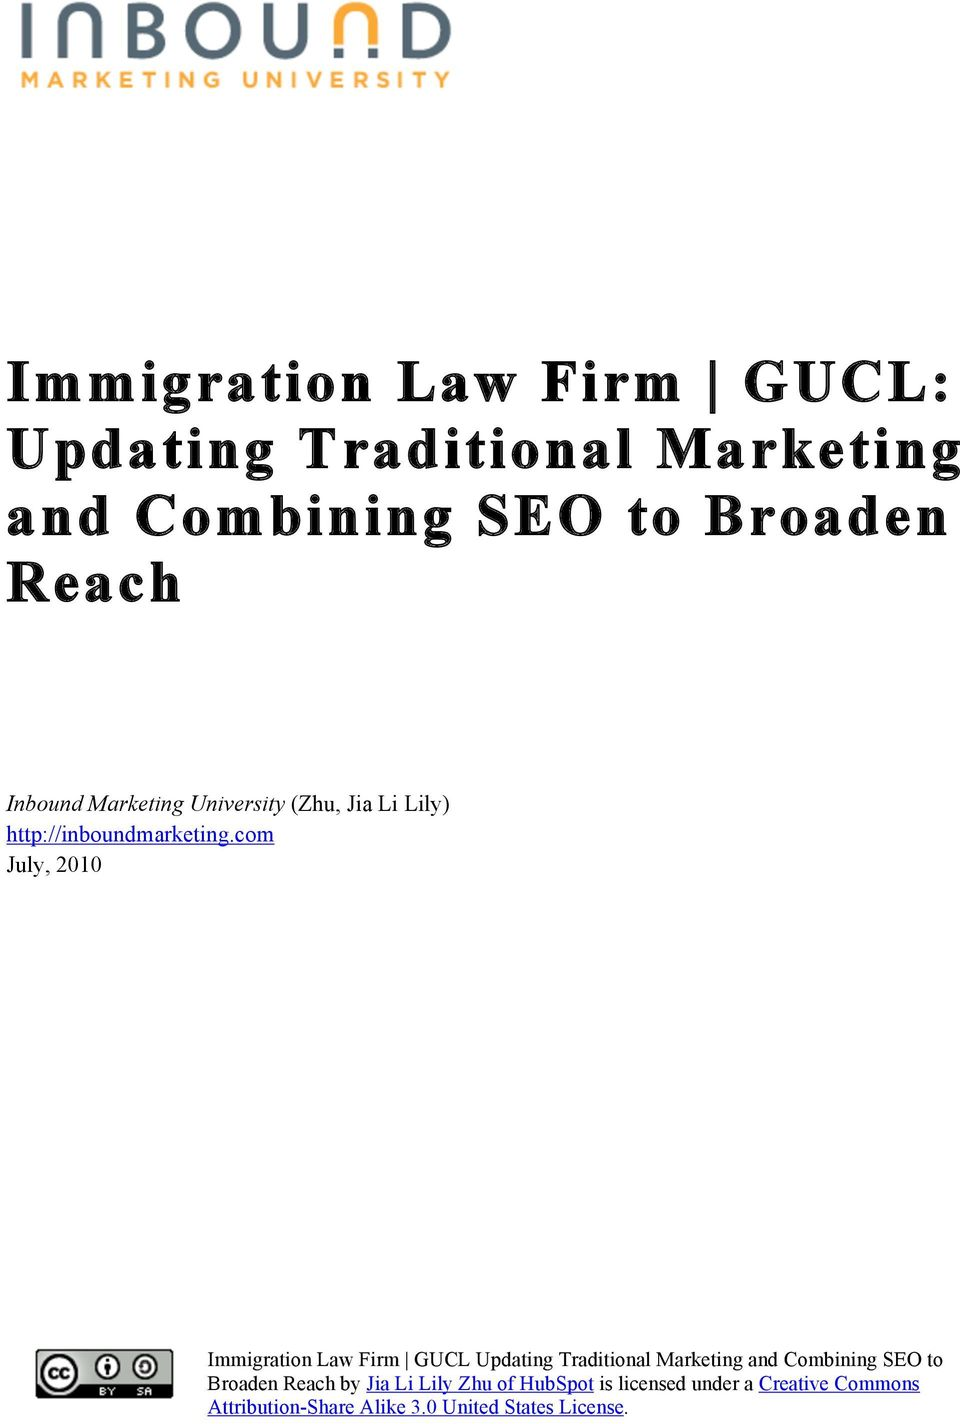 Traditional Marketing and Combining SEO to Broaden Reach by Jia Li Lily Zhu of